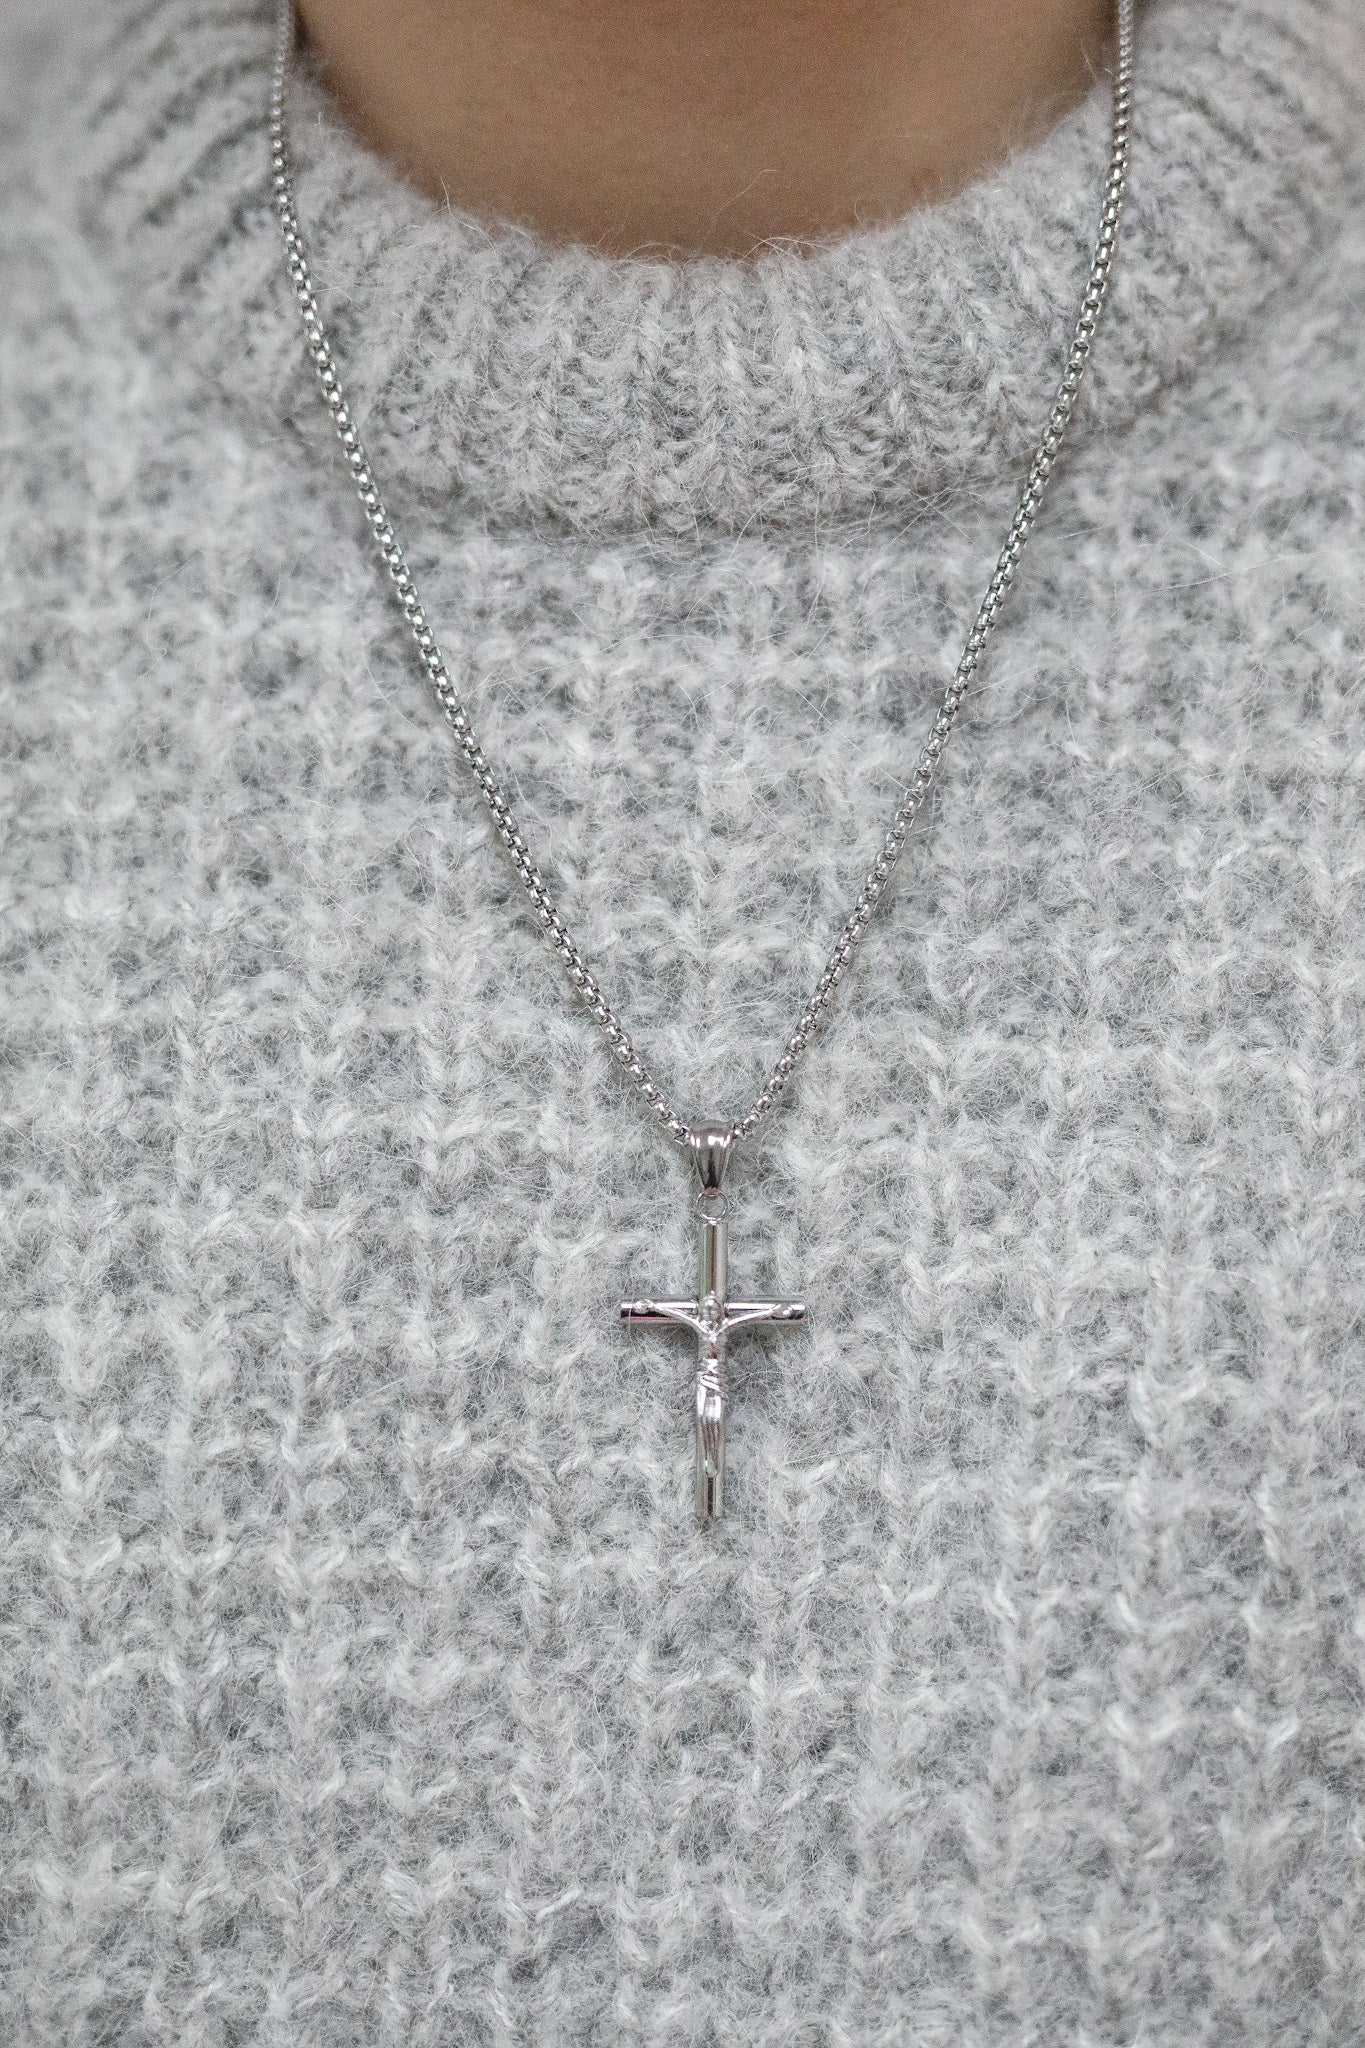 ARLO London silver stainless steel crucifix pendant jewellery accessory